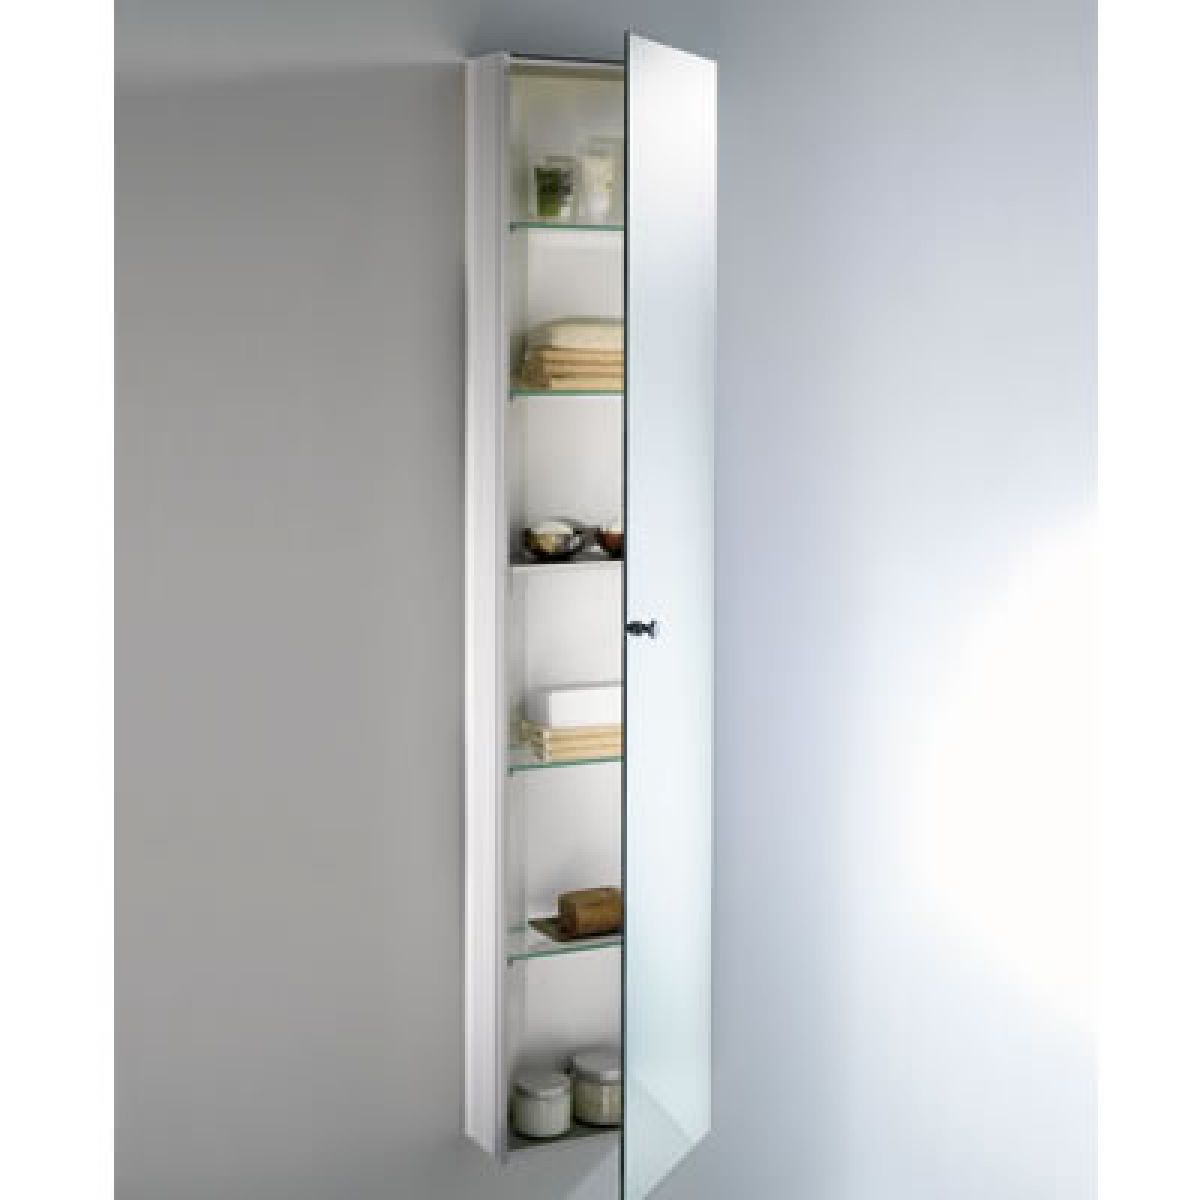 Schneider wangaline 1 door tall cabinet uk bathrooms - Tall bathroom storage cabinets with doors ...